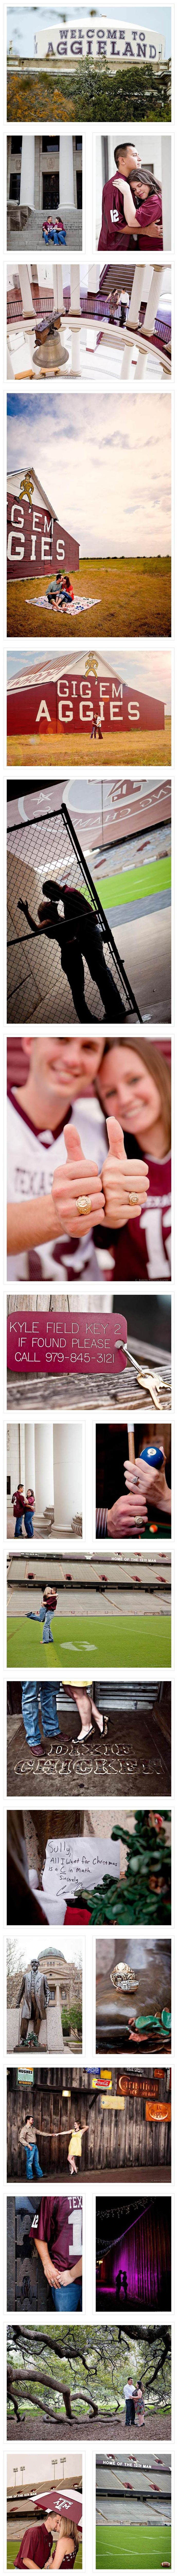 College Station Wedding Photographer, Texas A&M, Aggies, Engagement, Aggie Barn, Academic Building, Administration, Dixie Chicken, Century Tree, Kyle Field, 12th man